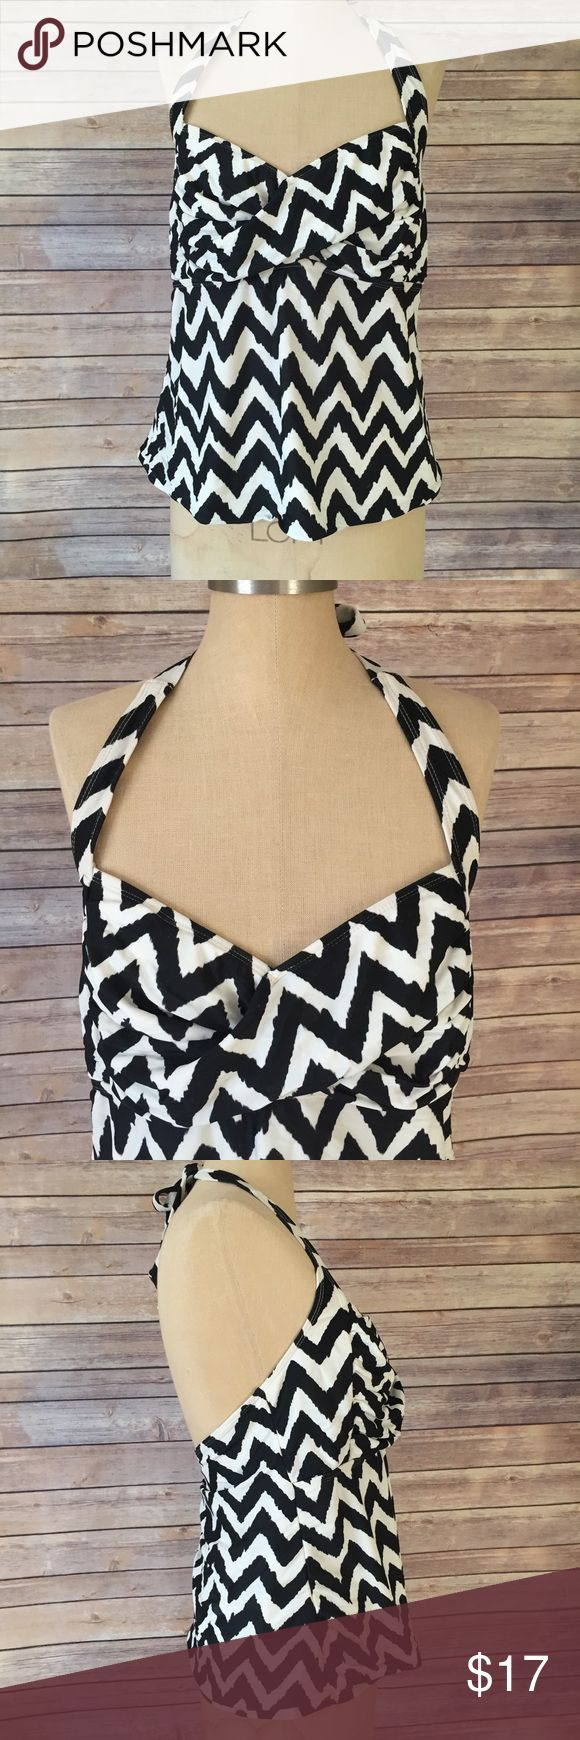 Black and White Chevron Plus Size Swim Top Size 1X or 16W. Runs a bit small, I'm a L XL and its fits me. The mannequin is my daughter's a size M and too big on the mannequin. This black and white chevron printed tankini is Unpadded and WireFree. Goes great with any solid colored bottoms. catalina Swim One Pieces